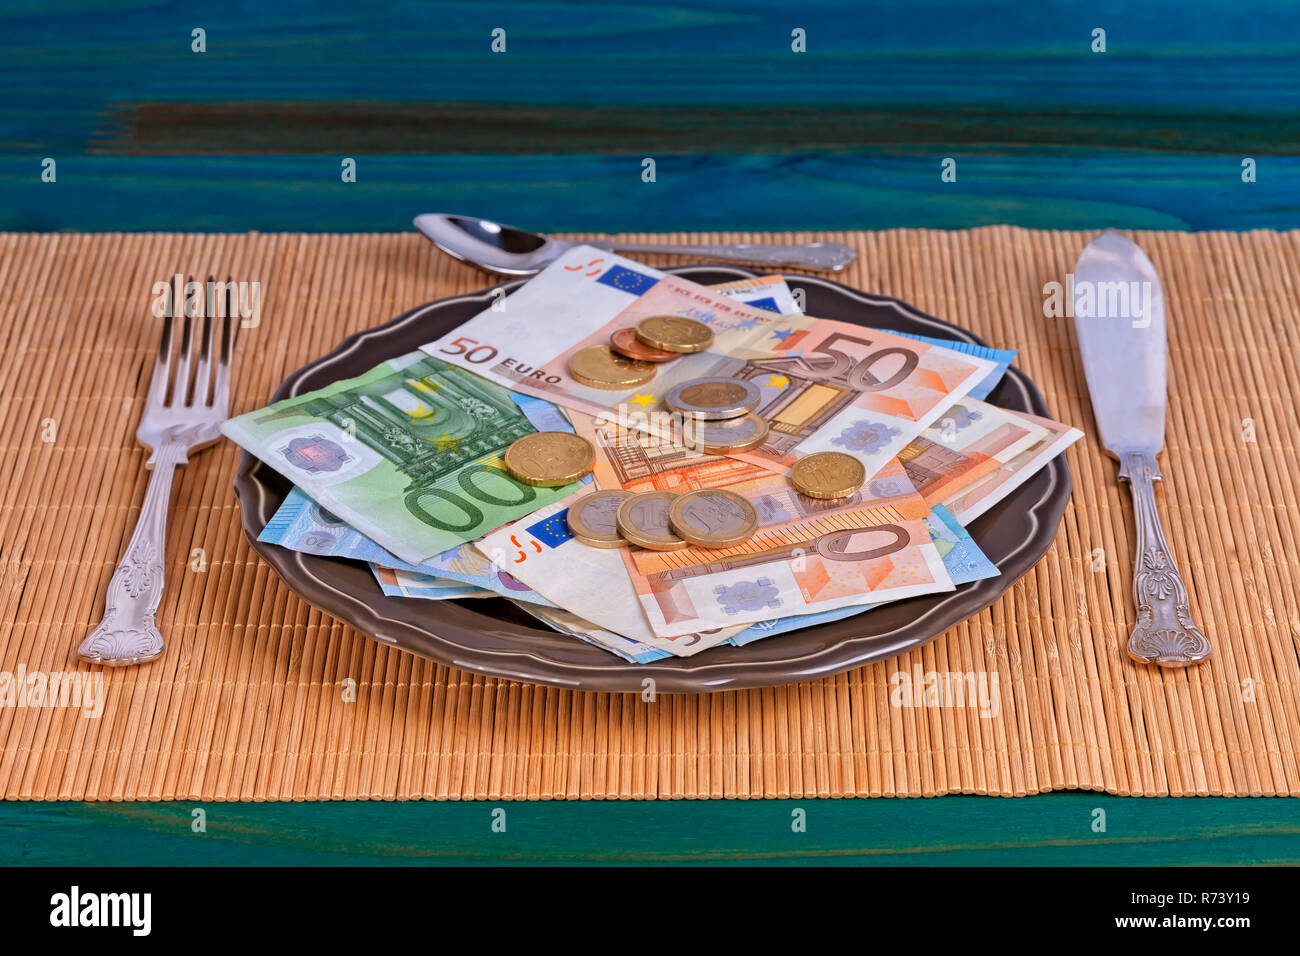 A plate full of money ready to be eaten with cutlery on top of an Asian tablecloth. - Stock Image